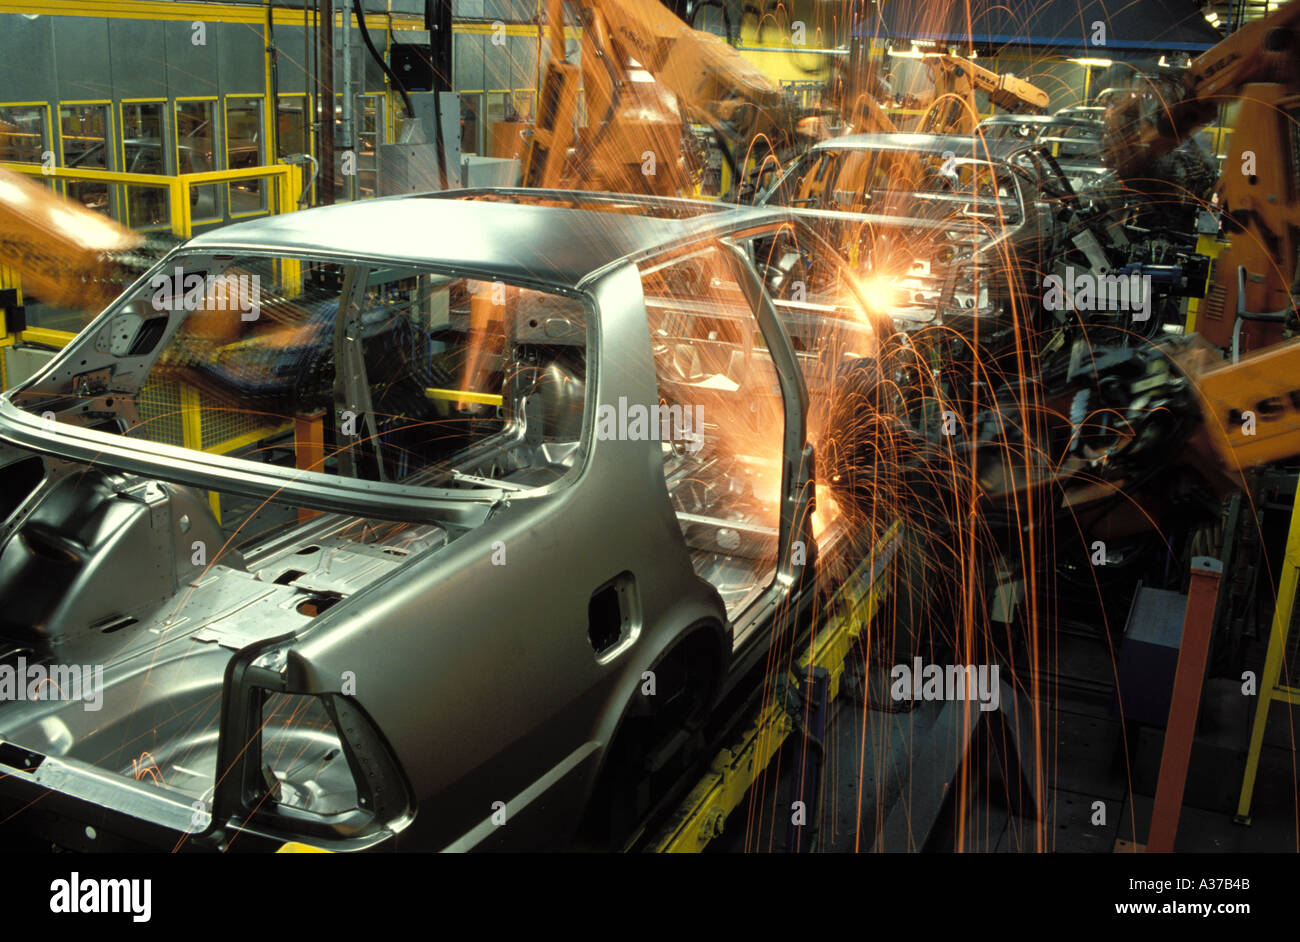 Spot welding robotics on assembly line at Saab Plant in Sweden Stock Photo